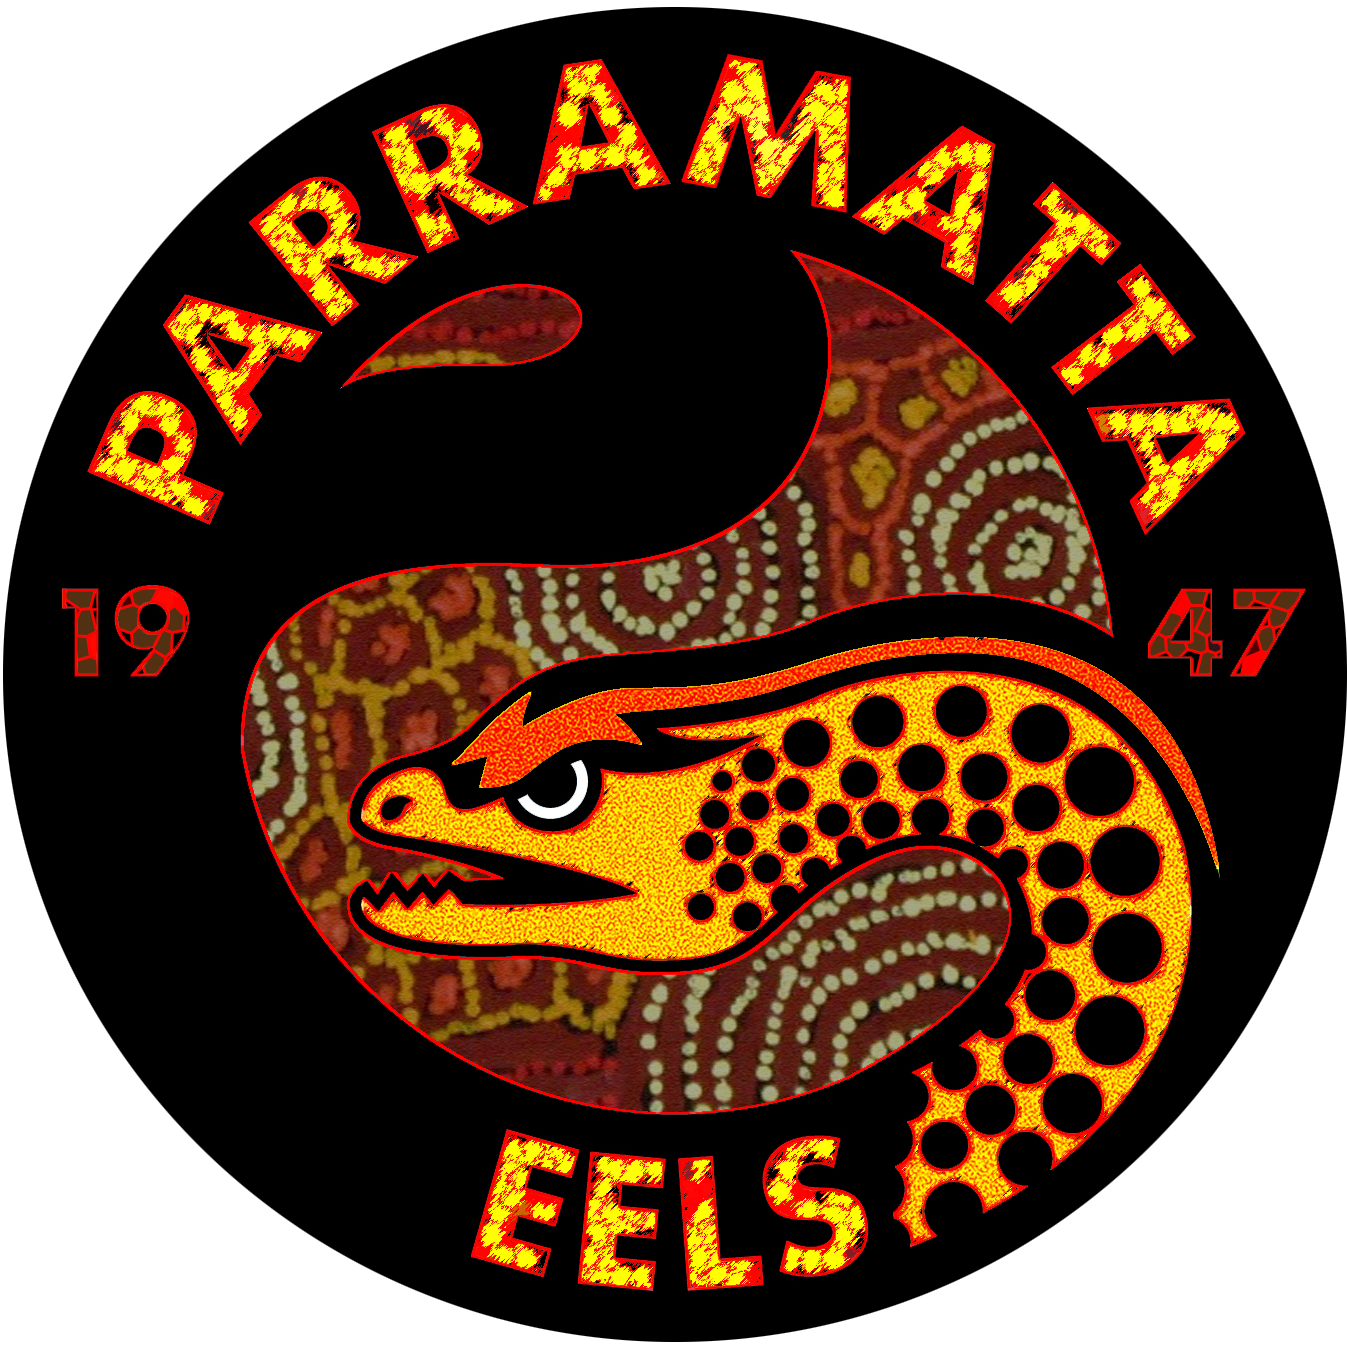 Parramatta Eels Logo Aboriginal Edition By Sunnyboiiii Rugby League Australian Rugby League Logos